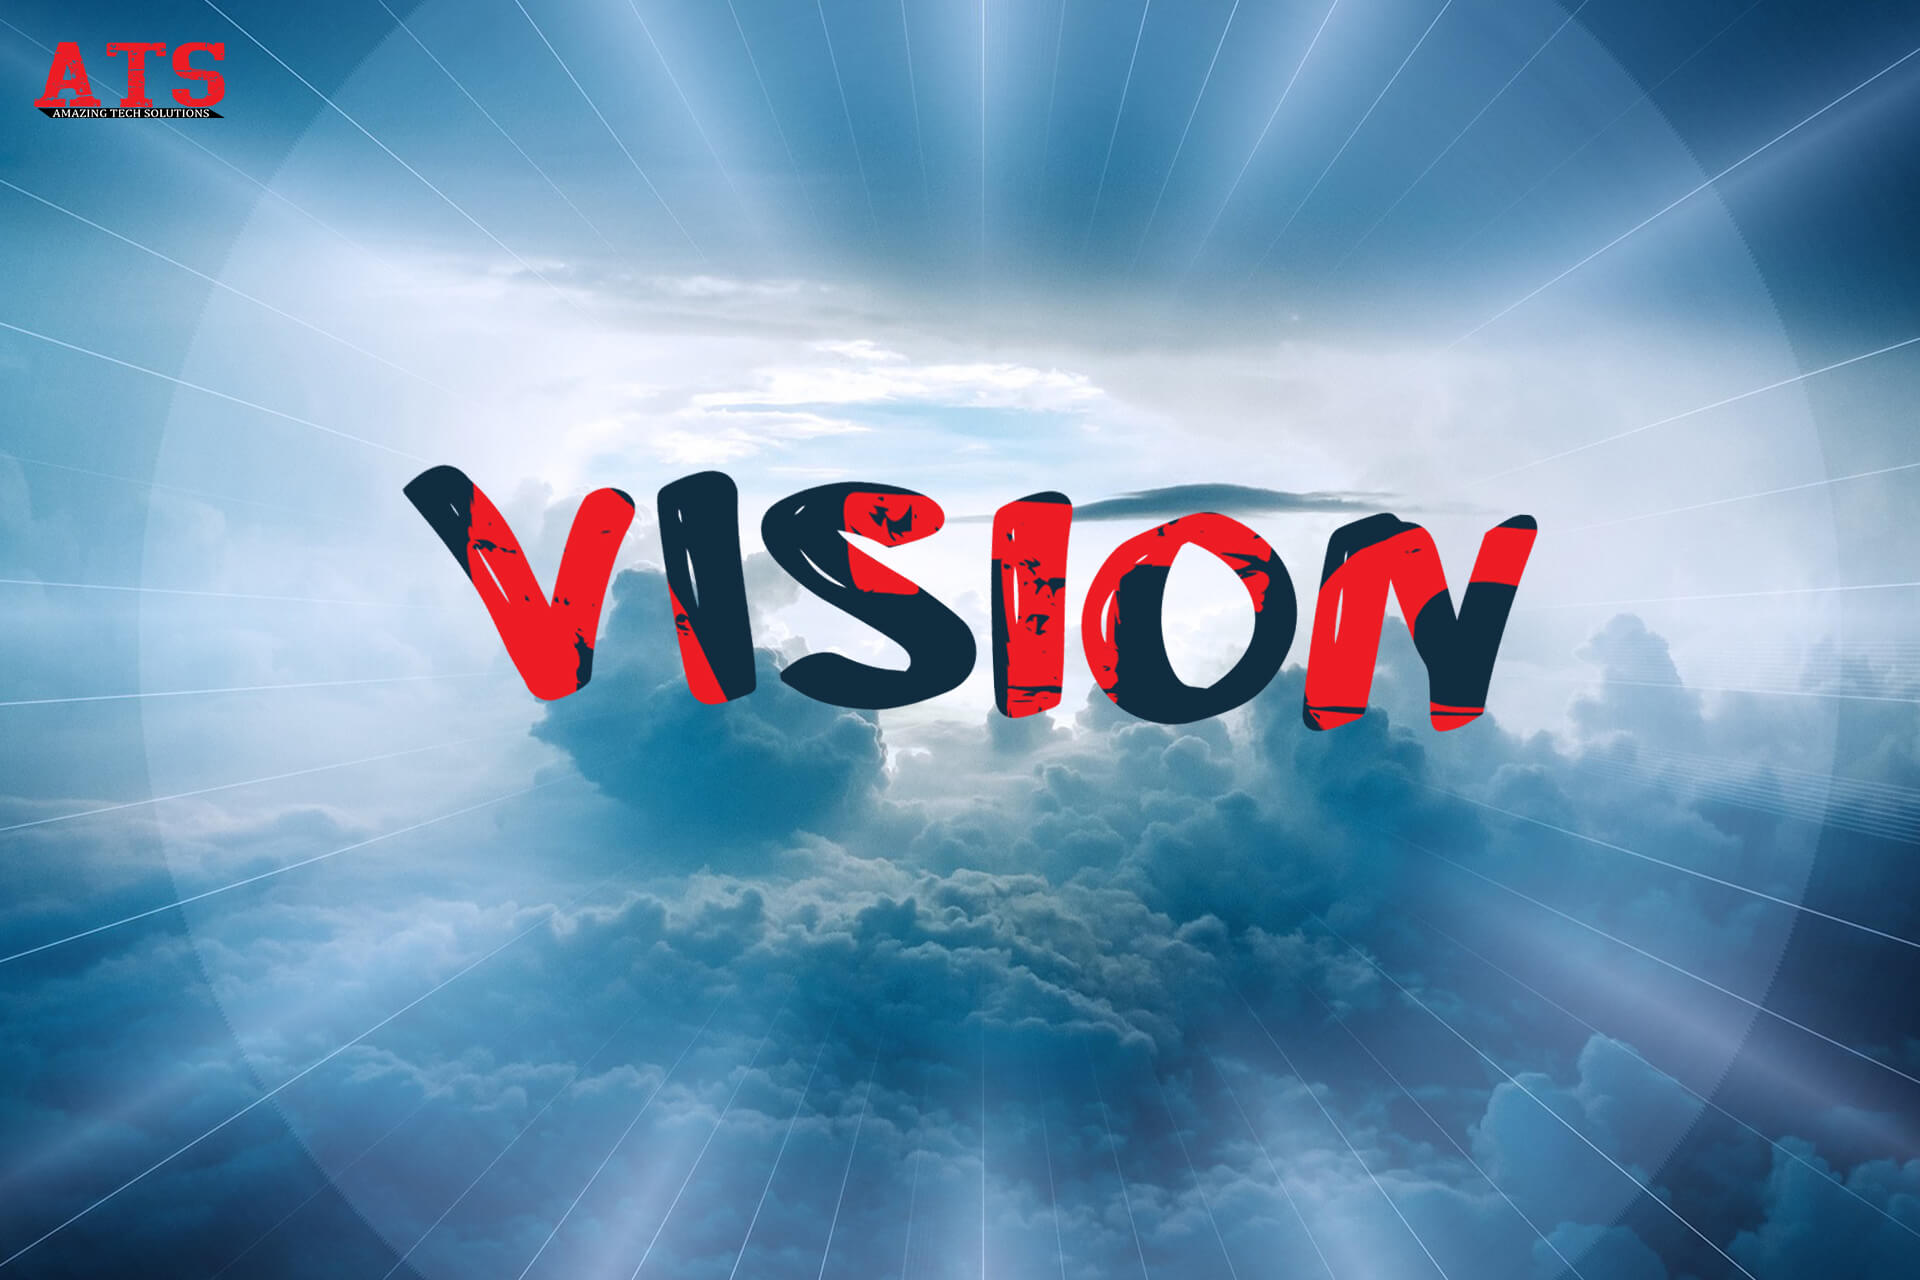 Well defined vision for small businesses